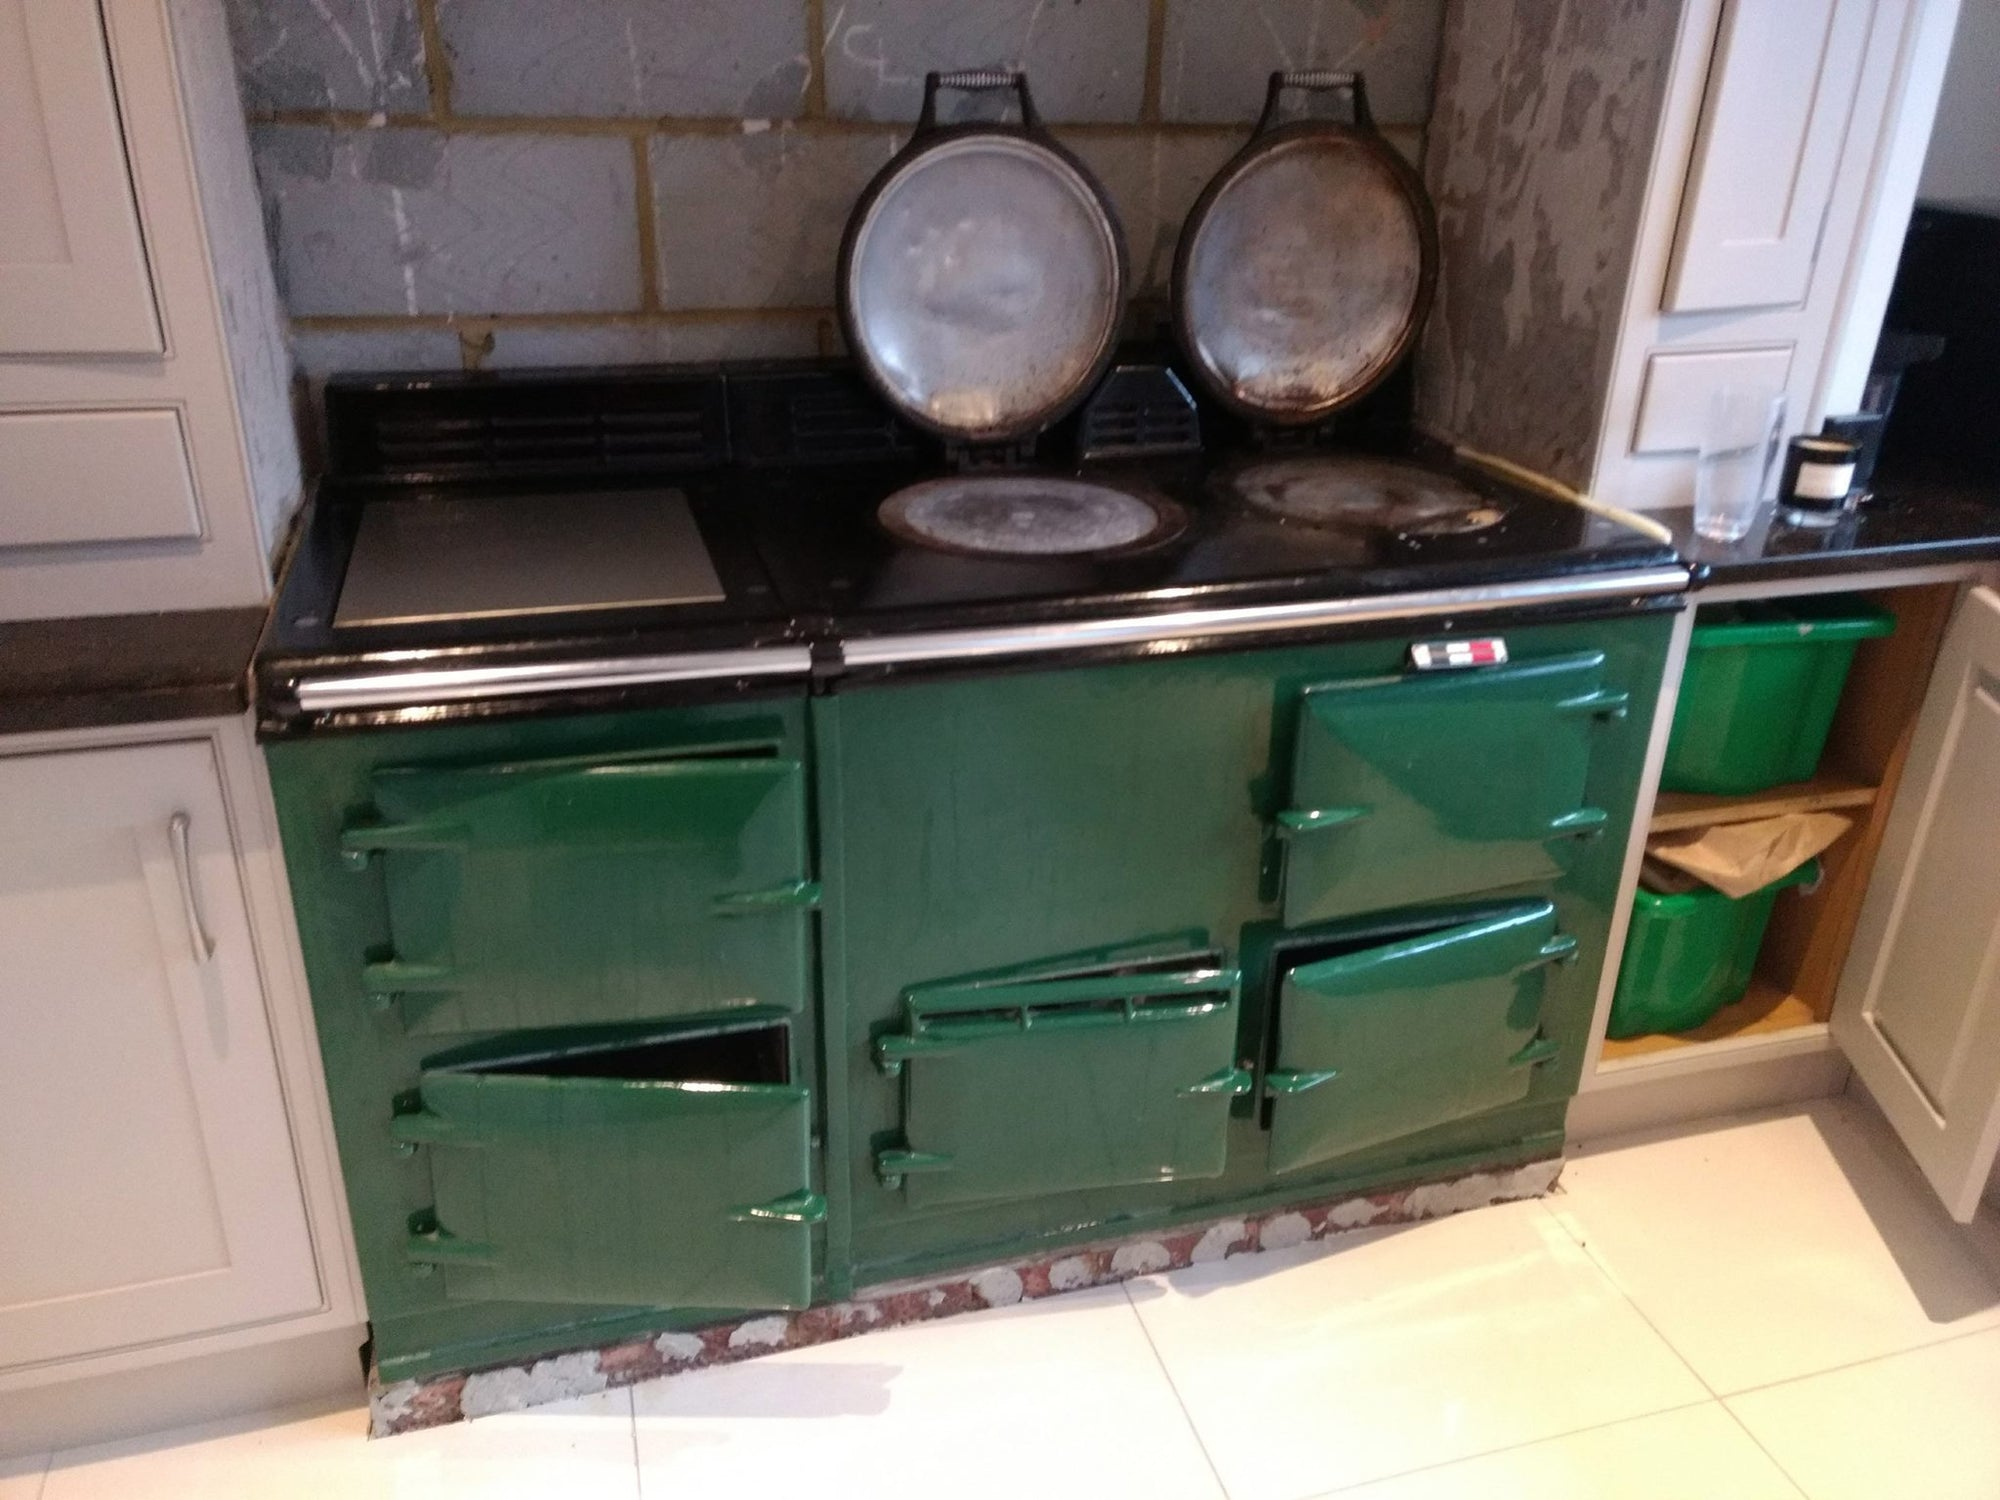 Green Aga range cooker re-enamelled to dark pewter